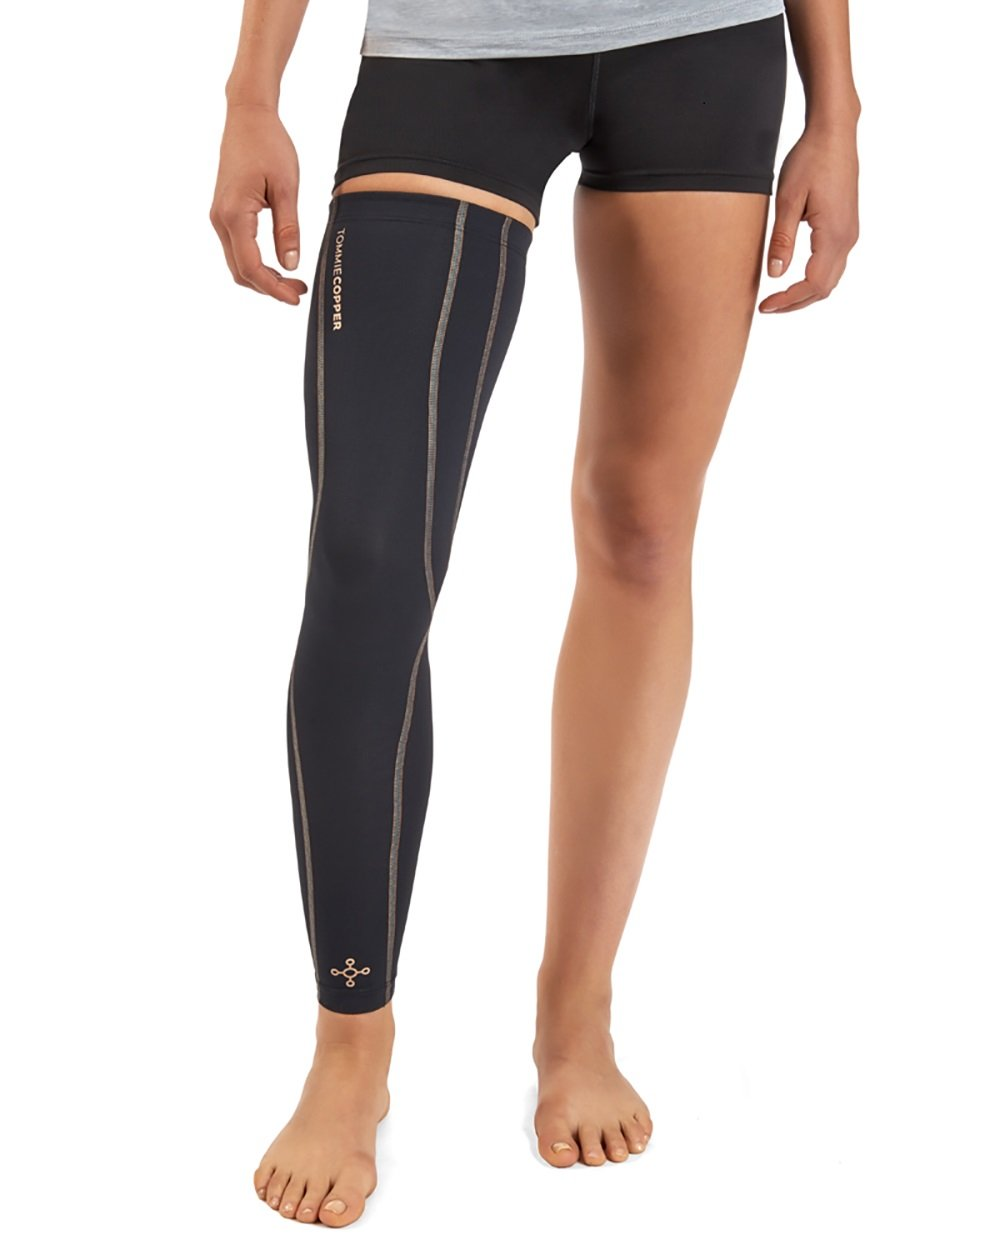 Tommie Copper Women's Performance Full Leg Sleeves 2.0, Small, Black